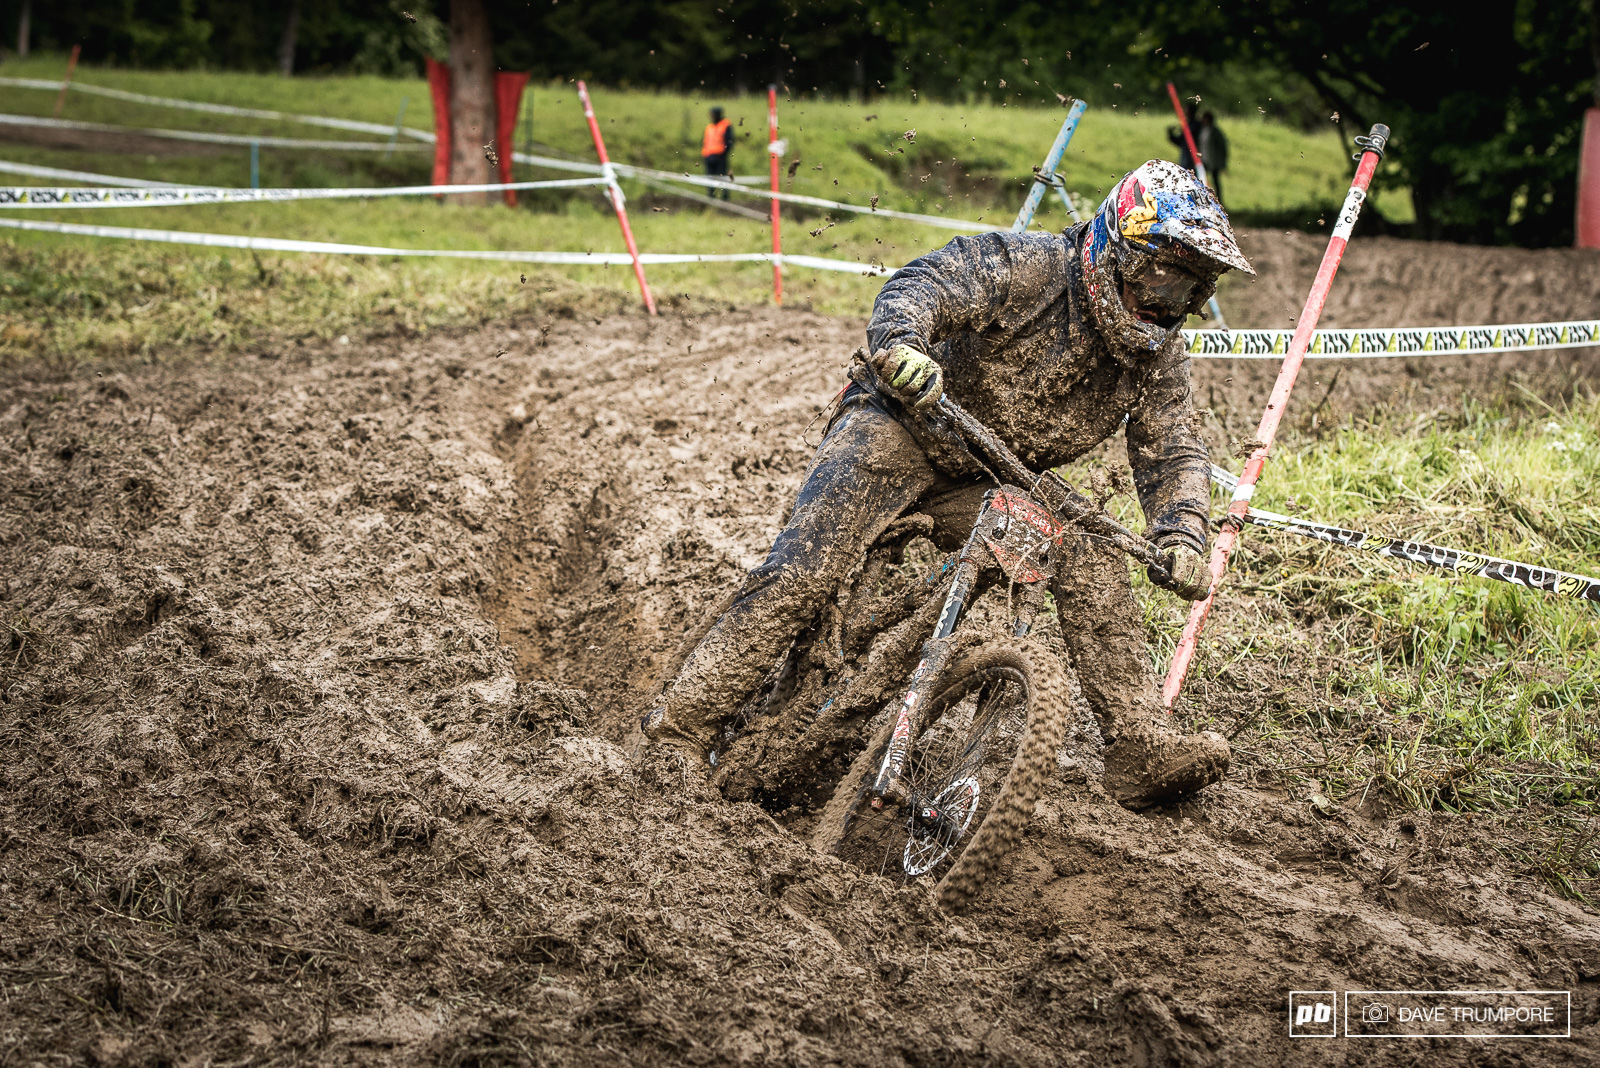 Marcelo goes full moto wishing he had a throttle though to get across the boggy bits lower down.